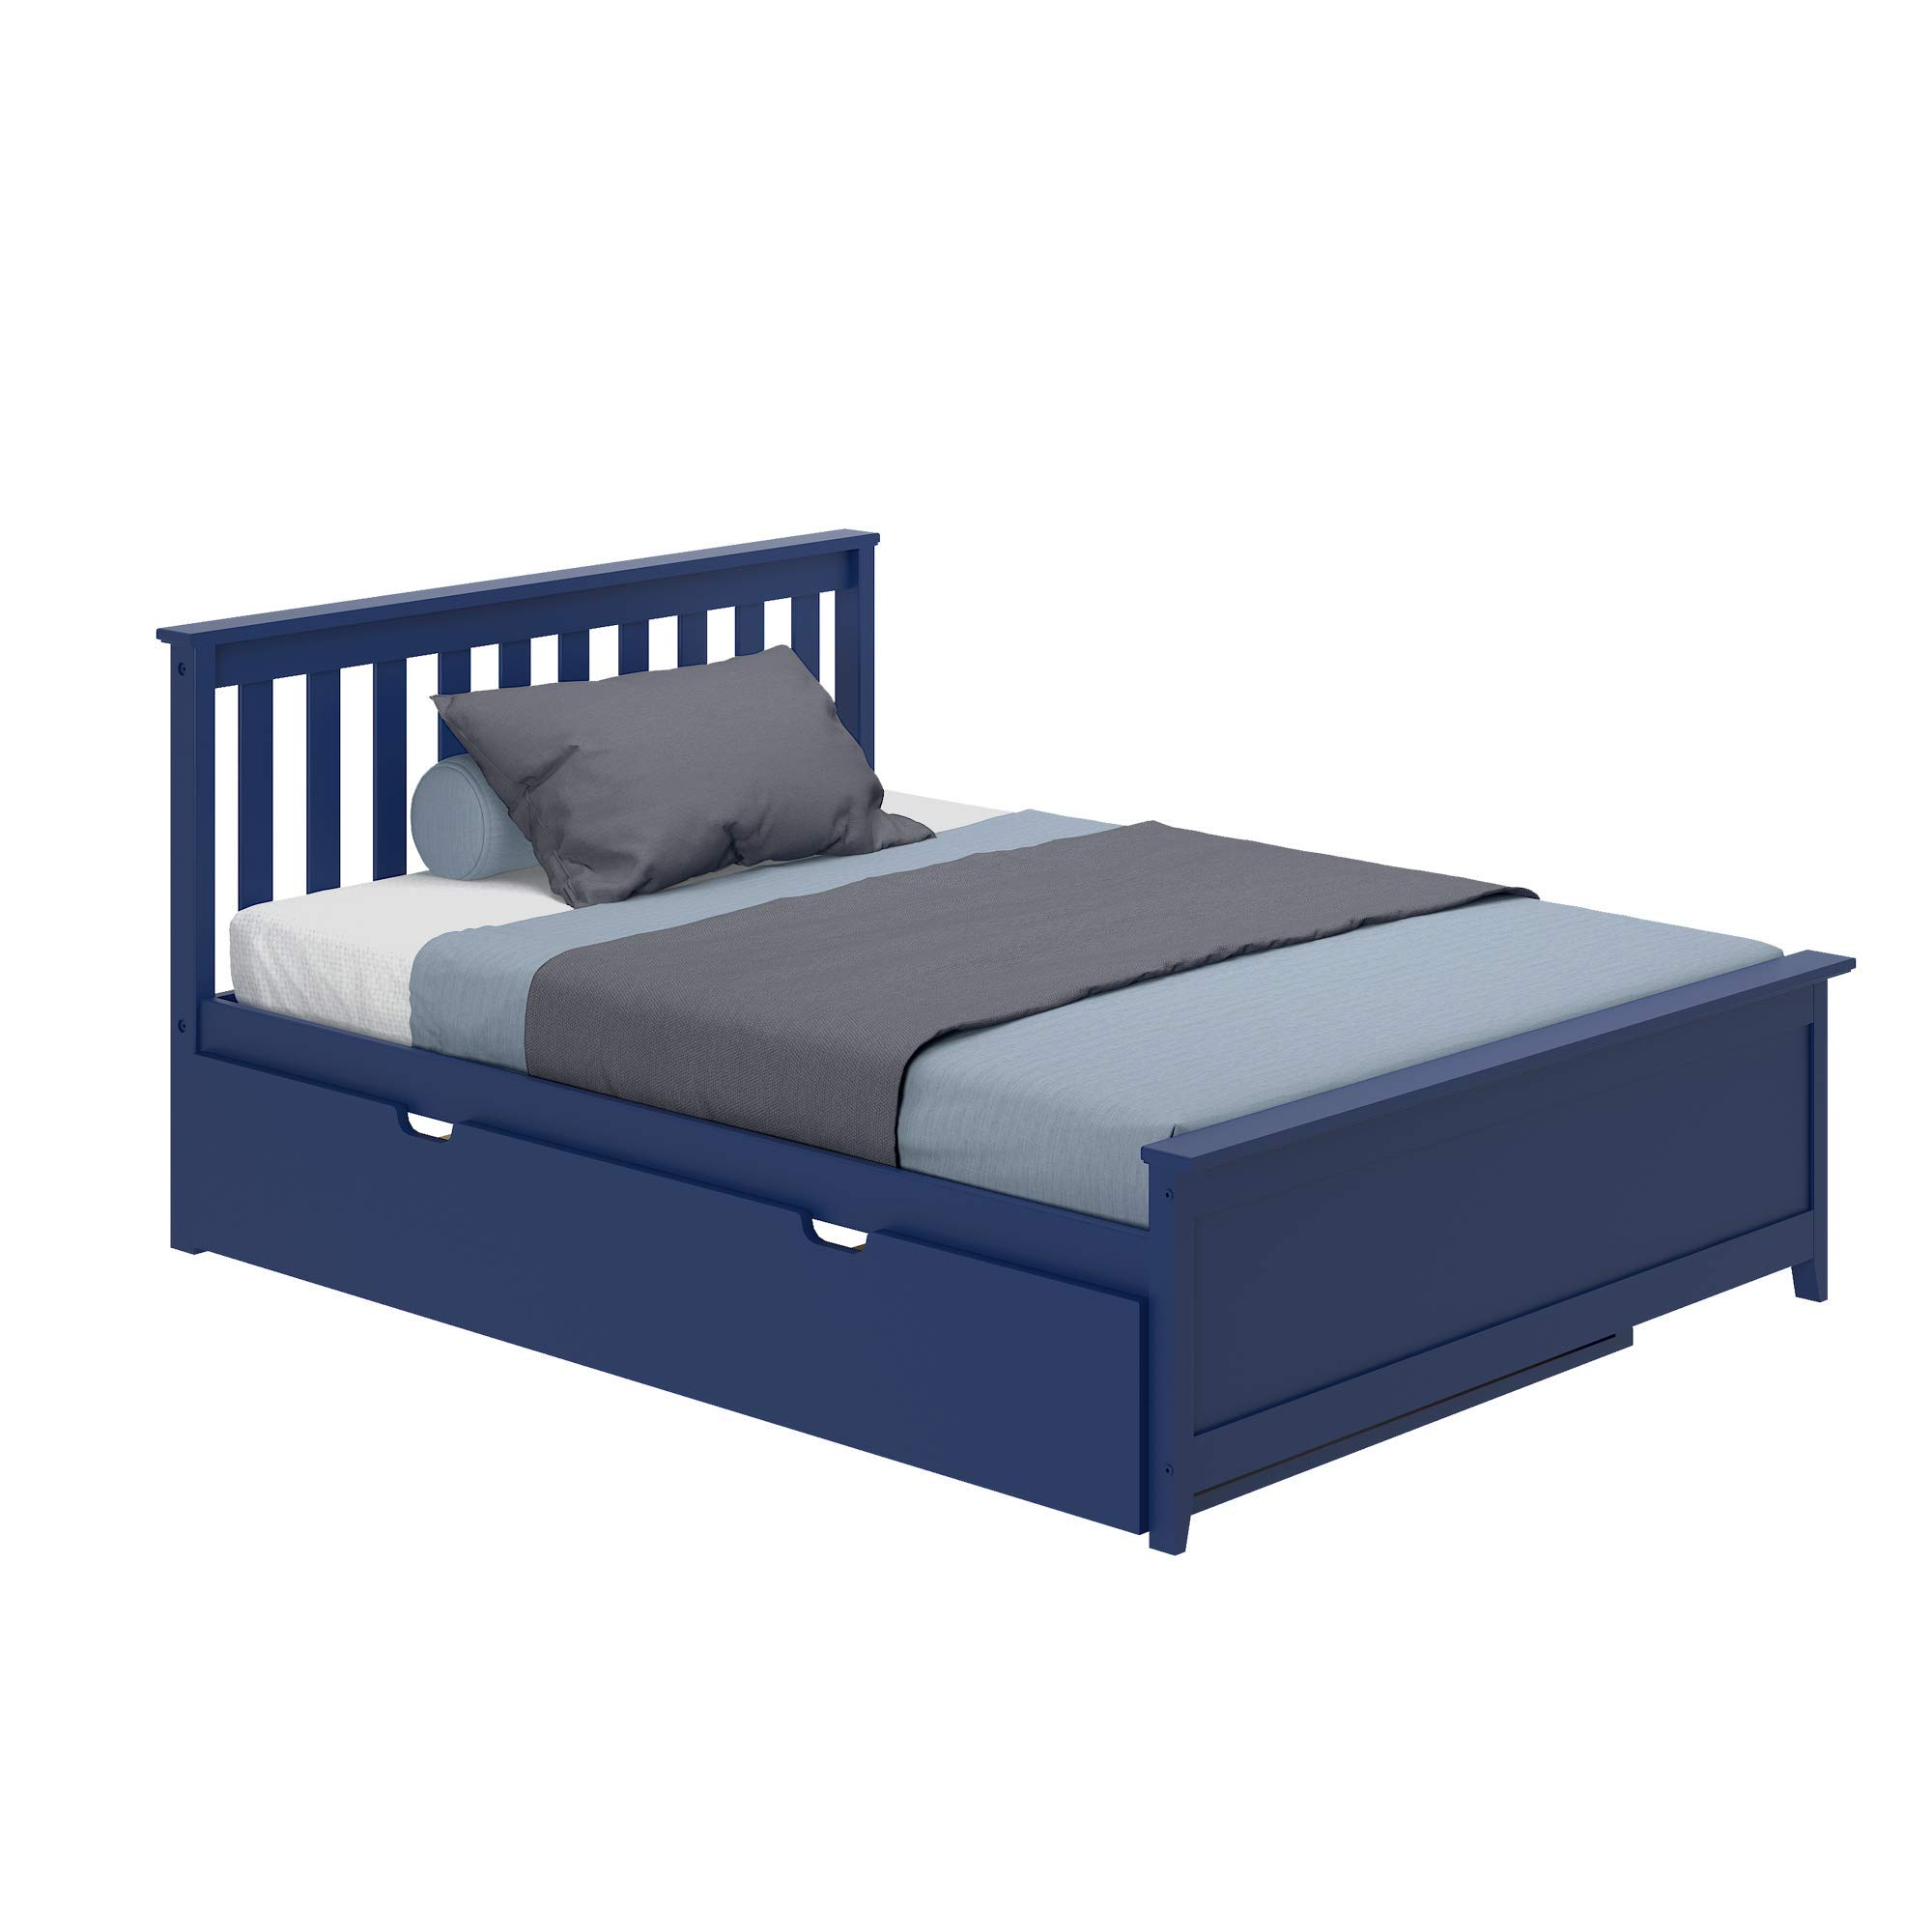 Max & Lily 186211-131 Solid Wood Full-Size Trundle Bed, Blue Platform, by Max & Lily